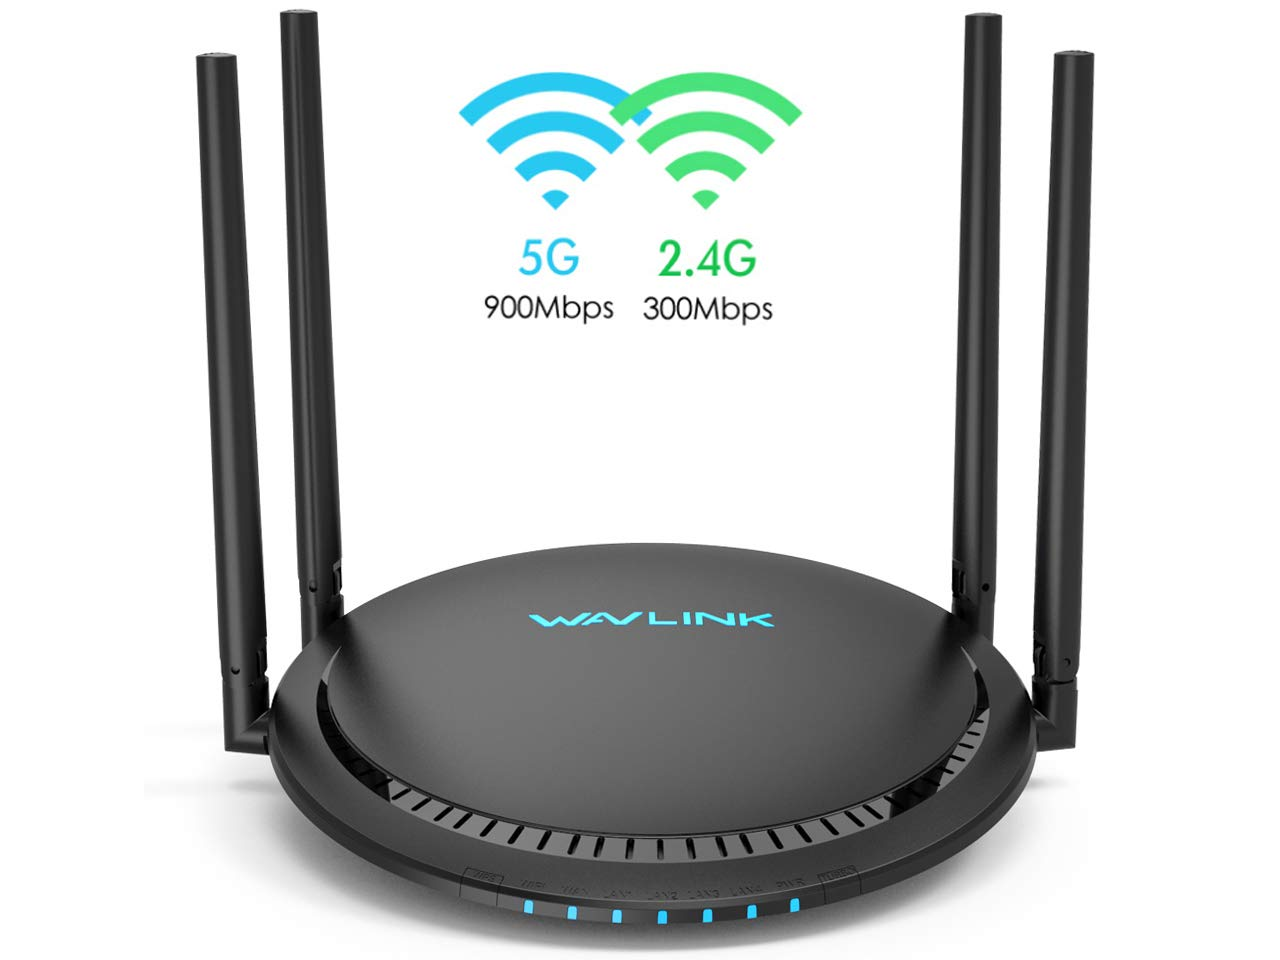 WiFi Router,Wavlink Remote AC1200 Smart WiFi Router with Touchlink Function,Computer Router High Speed 2.4G+5GHz Dual Band Gigabit Wireless Internet Router for Online Game&Home by WAVLINK